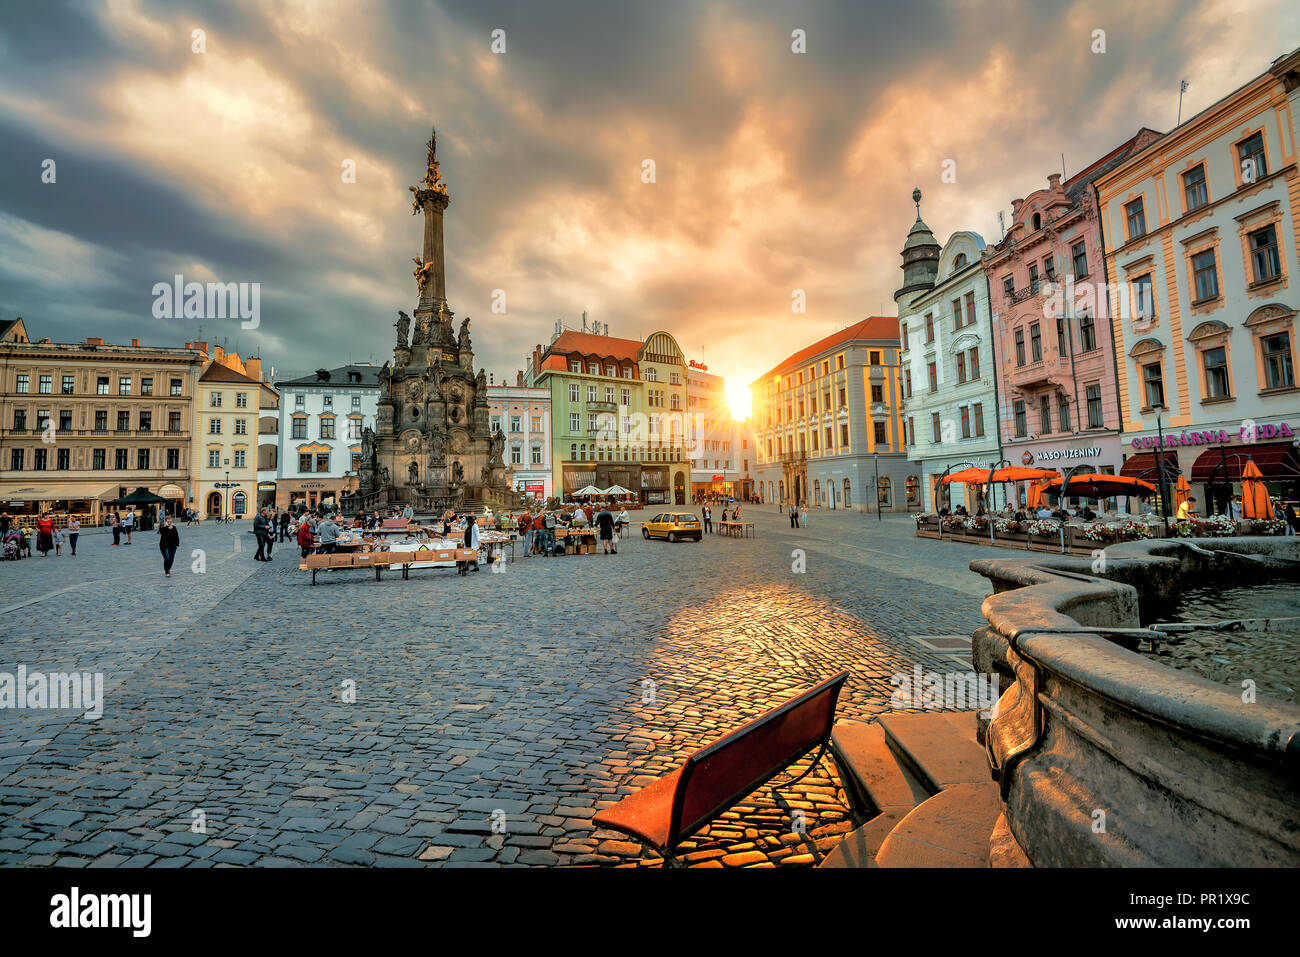 View of main square with monument Holy Trinity Column in historic town Olomouc. Czech Republic - Stock Image